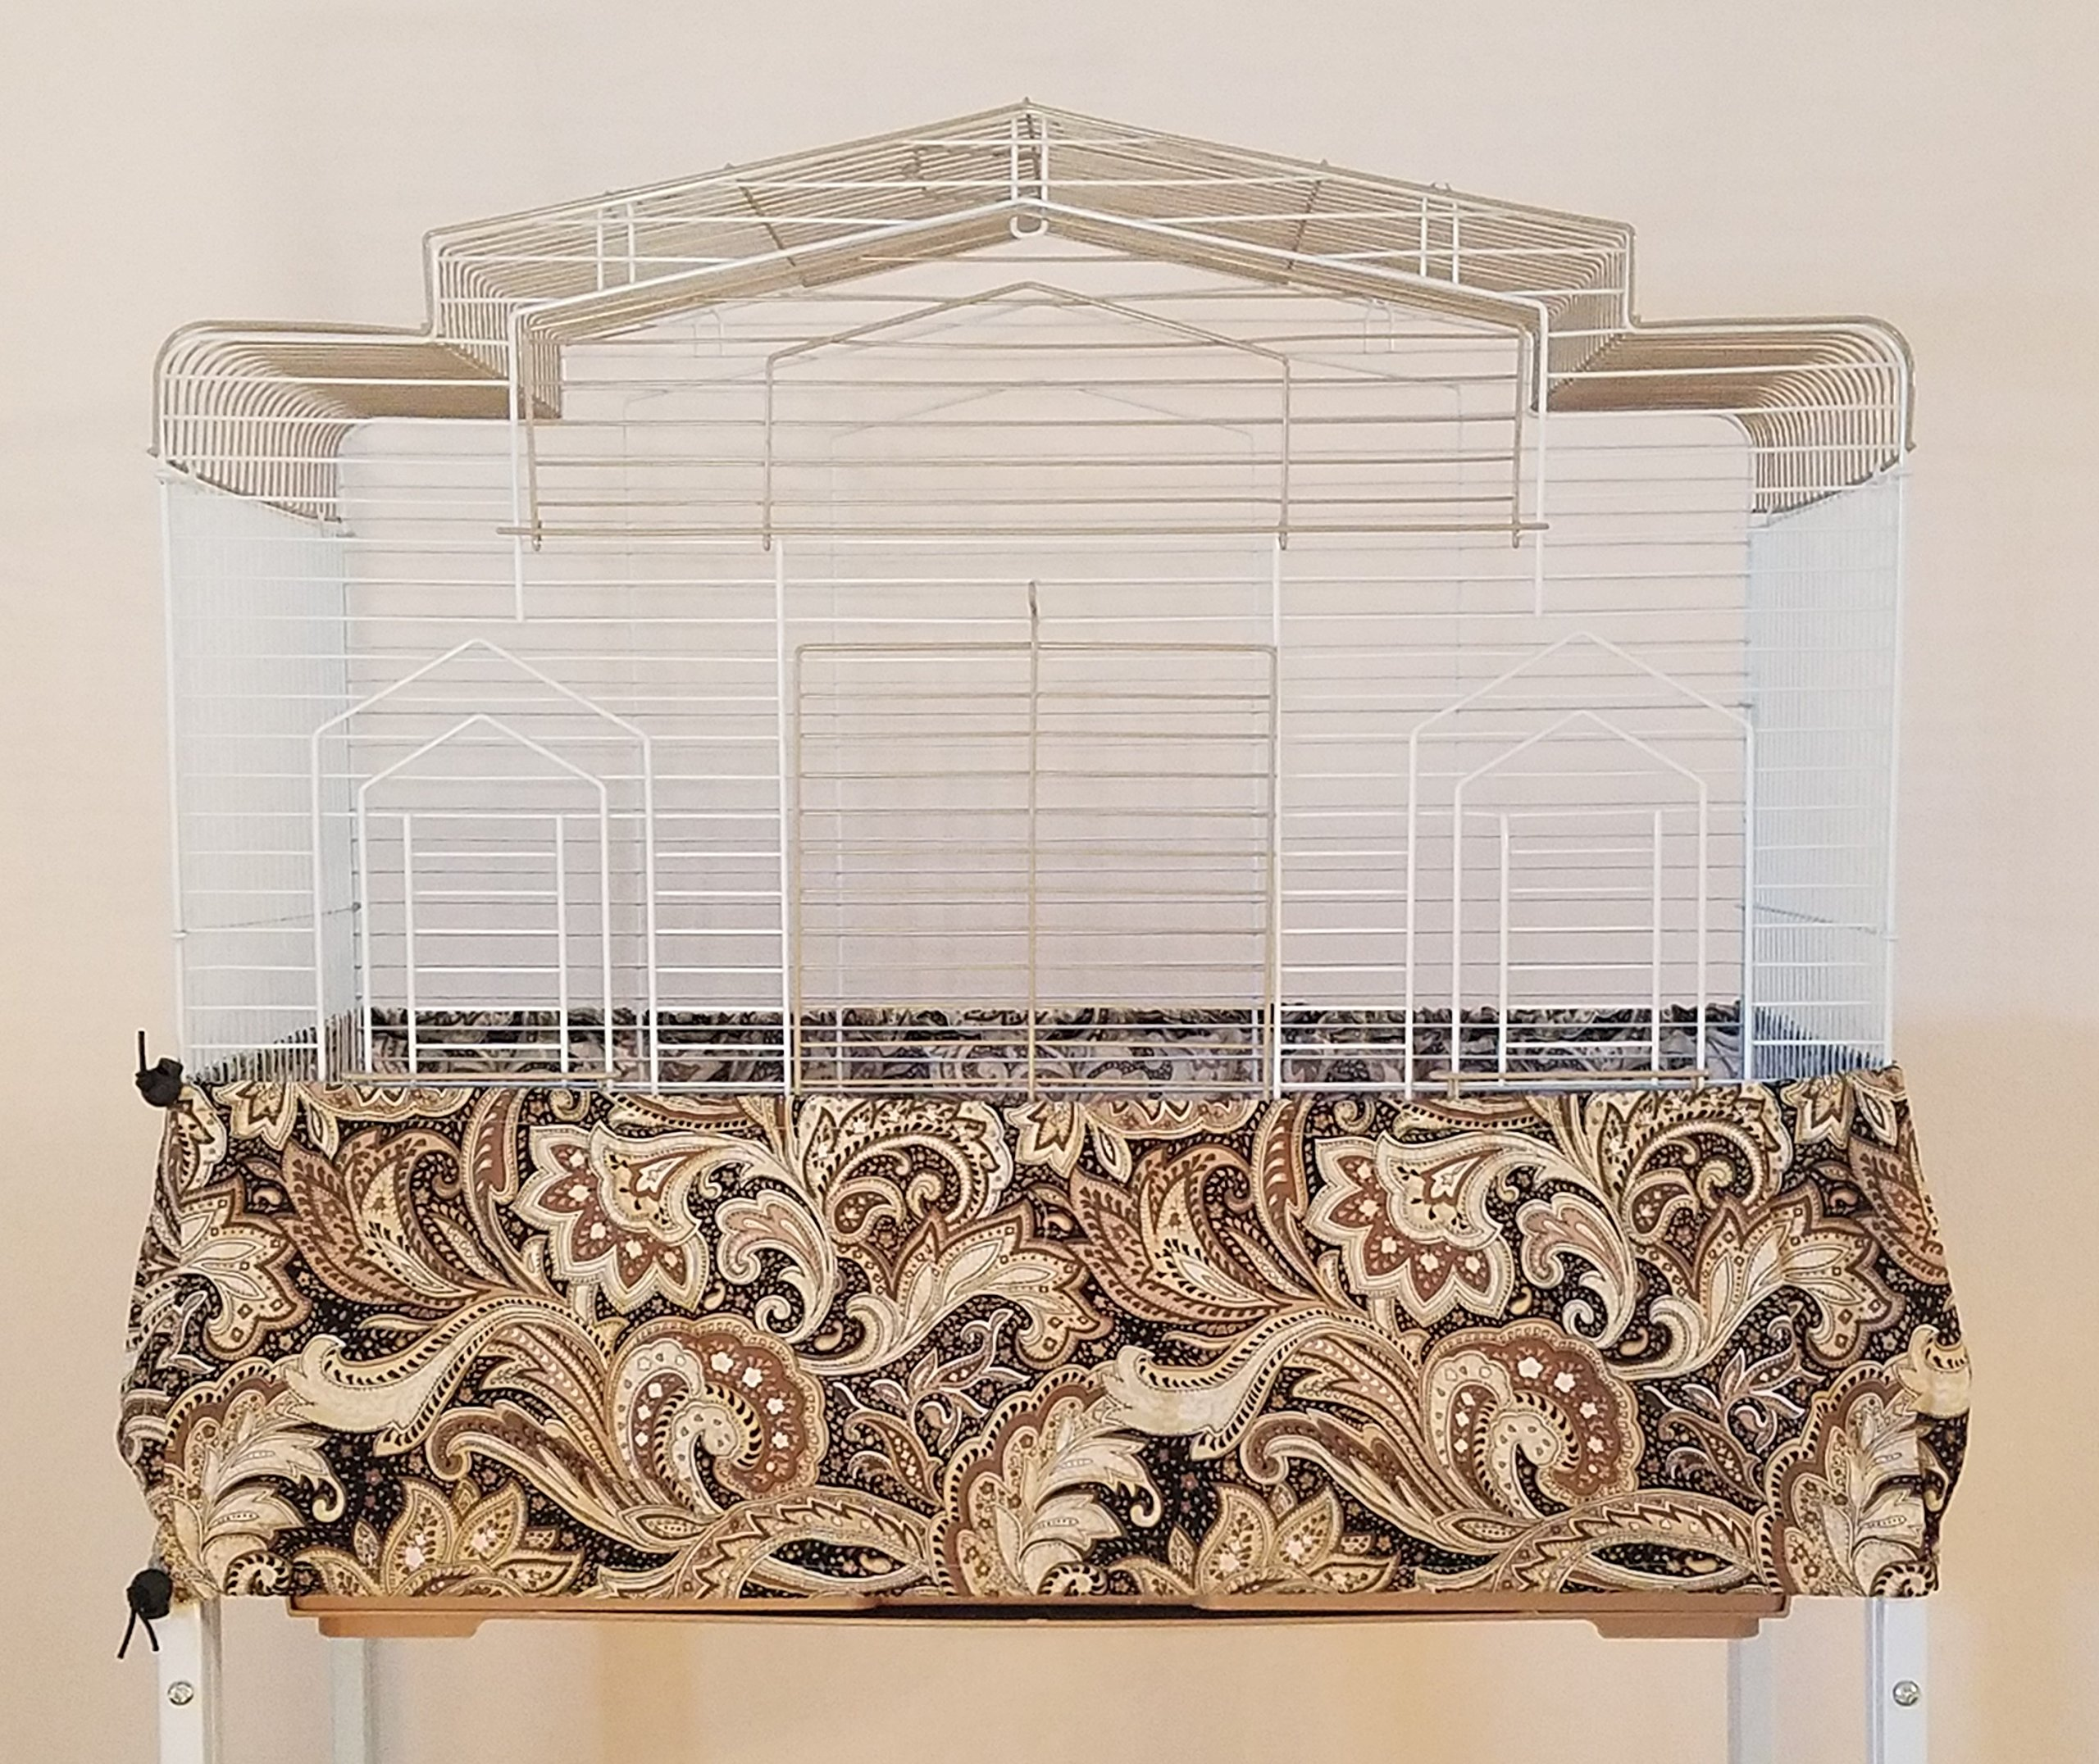 Penn Seed Seed Guard and Catcher Bird Cage Skirt - Black and Khaki Paisley, Extra Large (56''-112'' Cage Circumference)